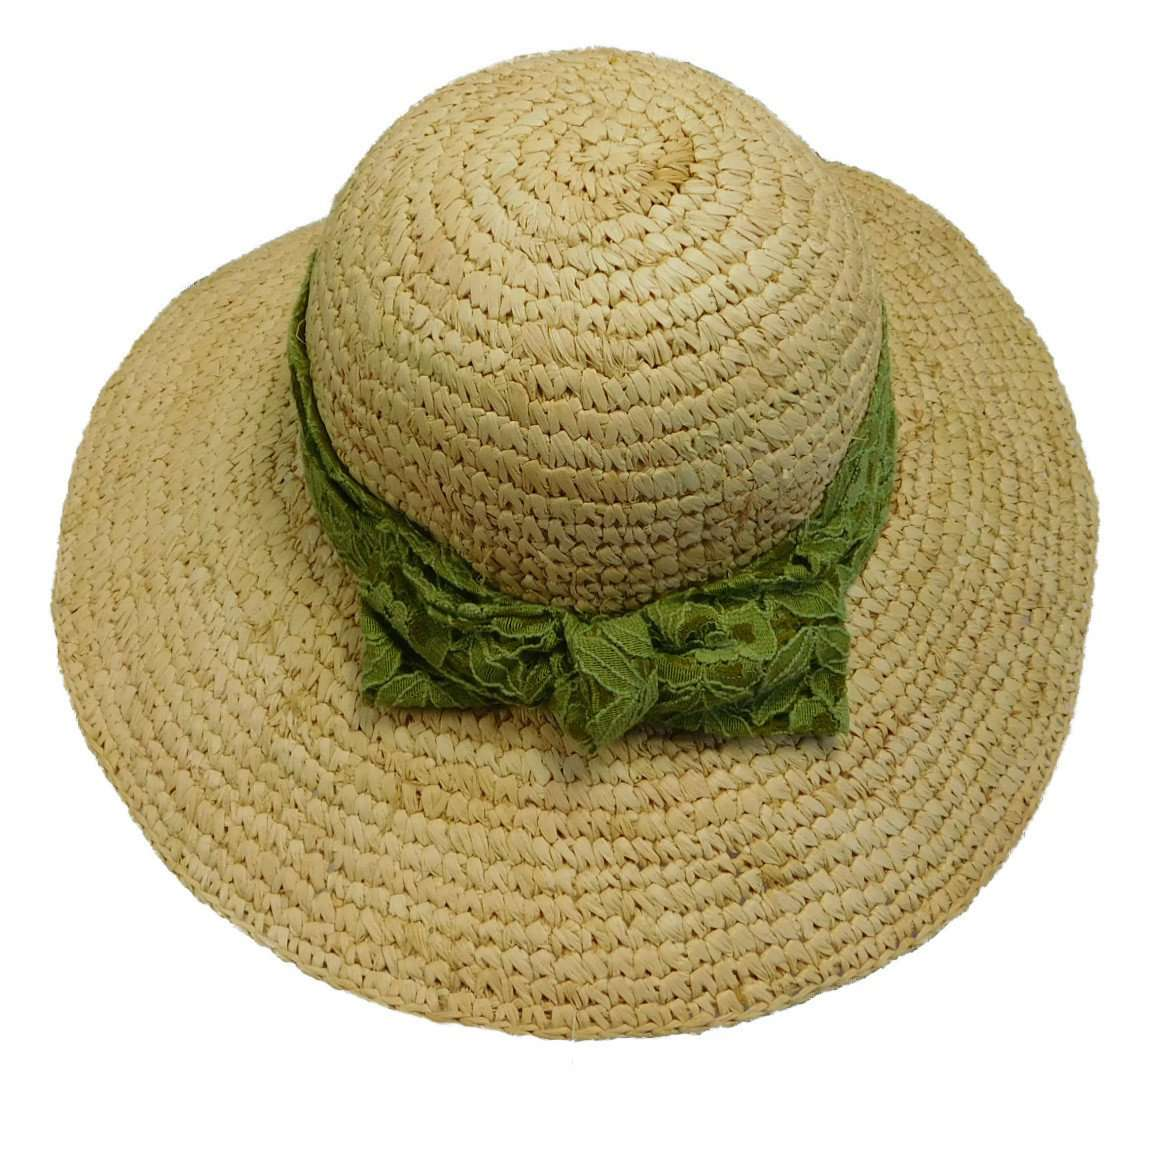 Crochet Raffia Sun Hat with Lace Scarf - SetarTrading Hats